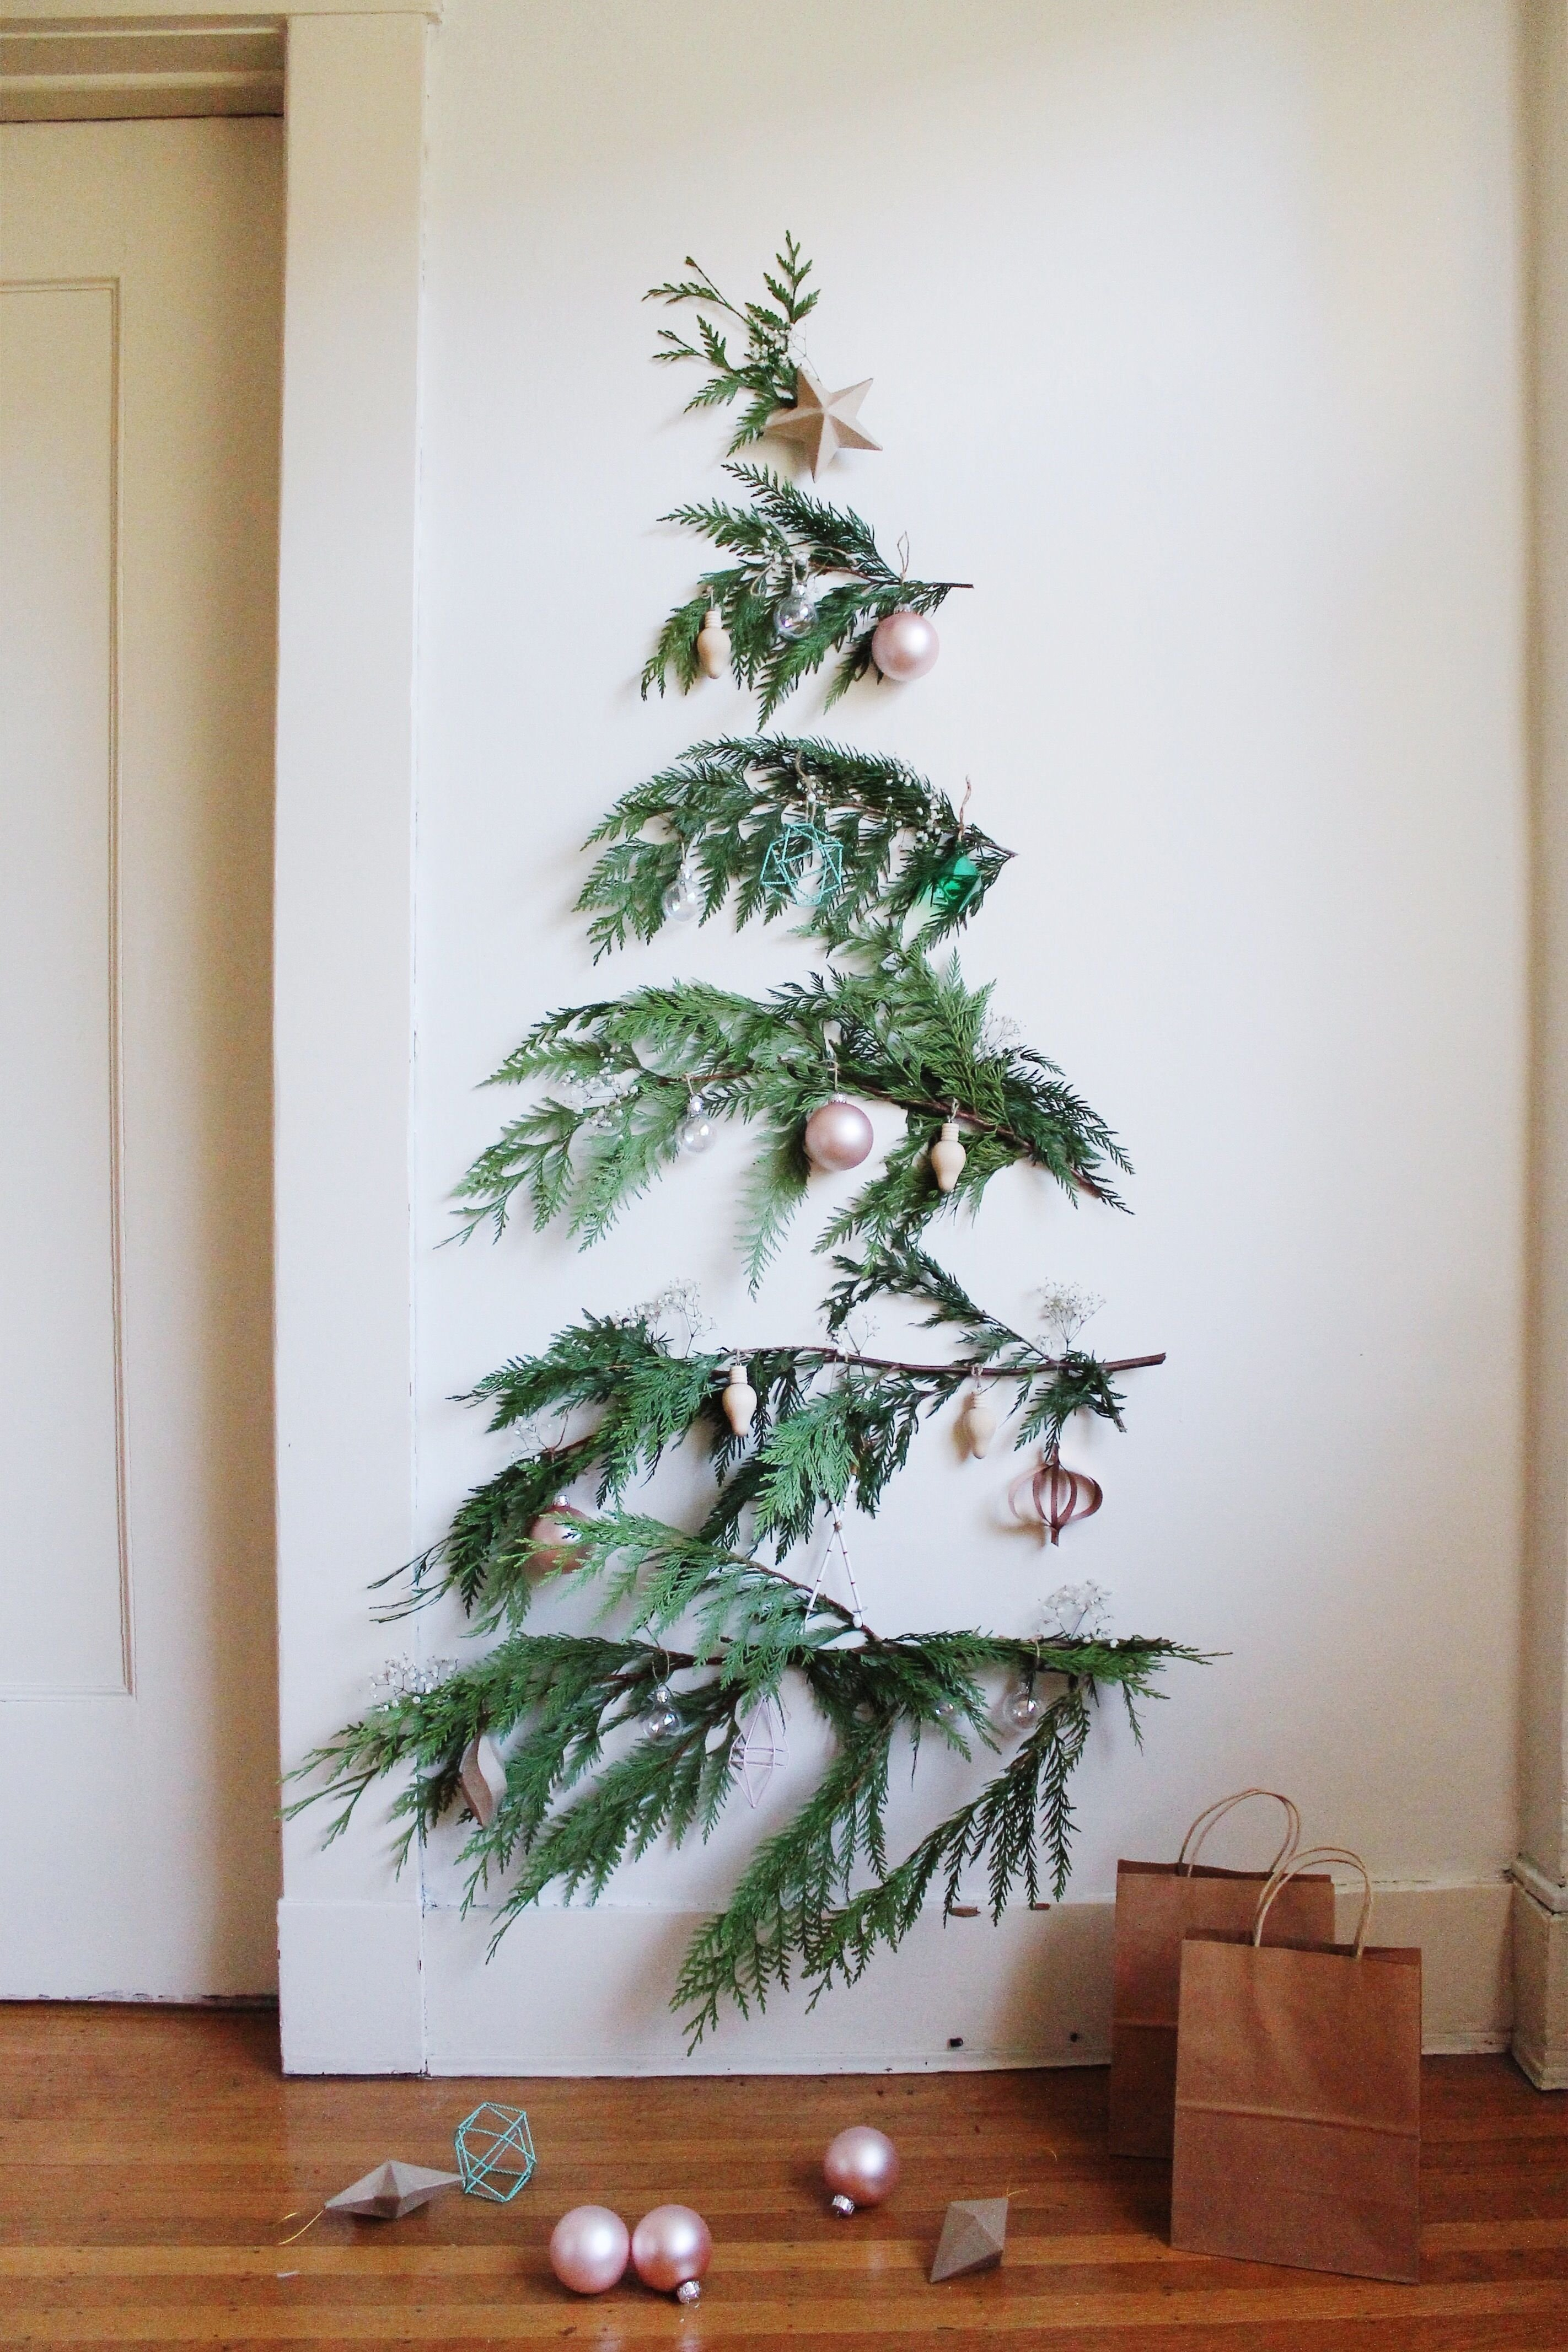 10 Amazing Christmas Tree Ideas For Small Spaces the perfect small space christmas tree ideas christmas tree ideas 2020